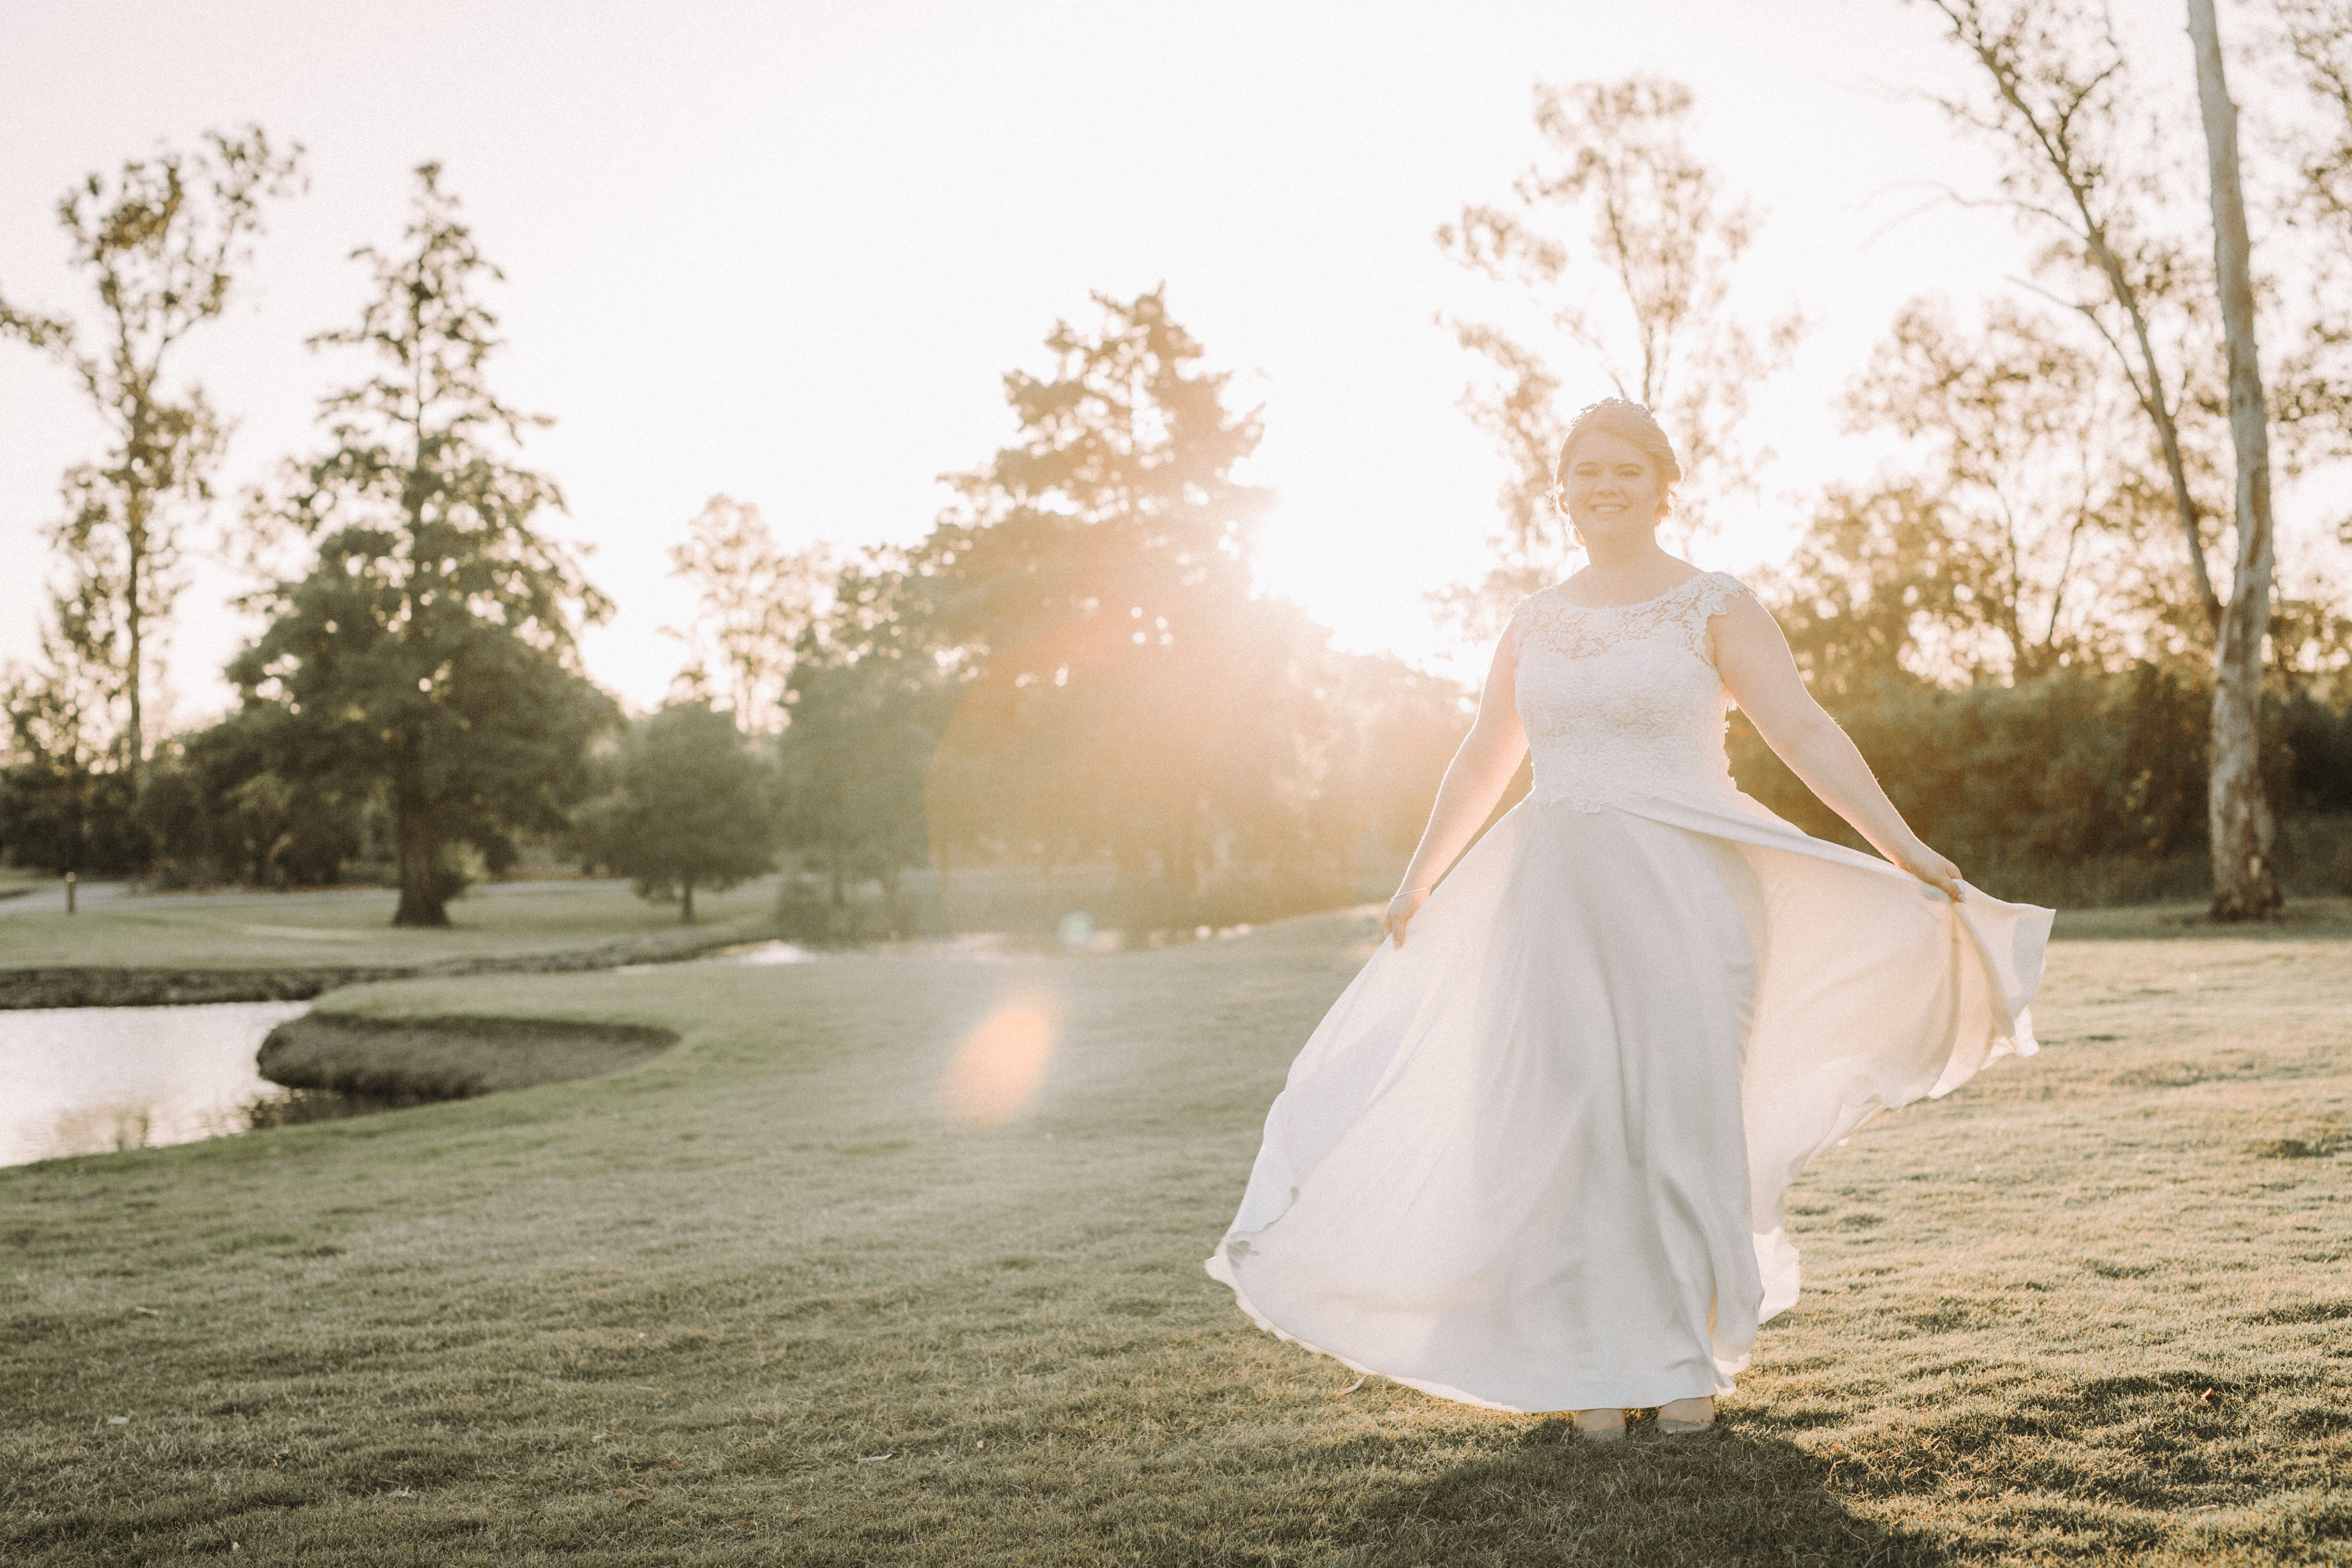 One of our real brides 'Taylor' looked stunning in her 'Candice' Bertossi Brides gown. www.paddingtonweddings.com.au